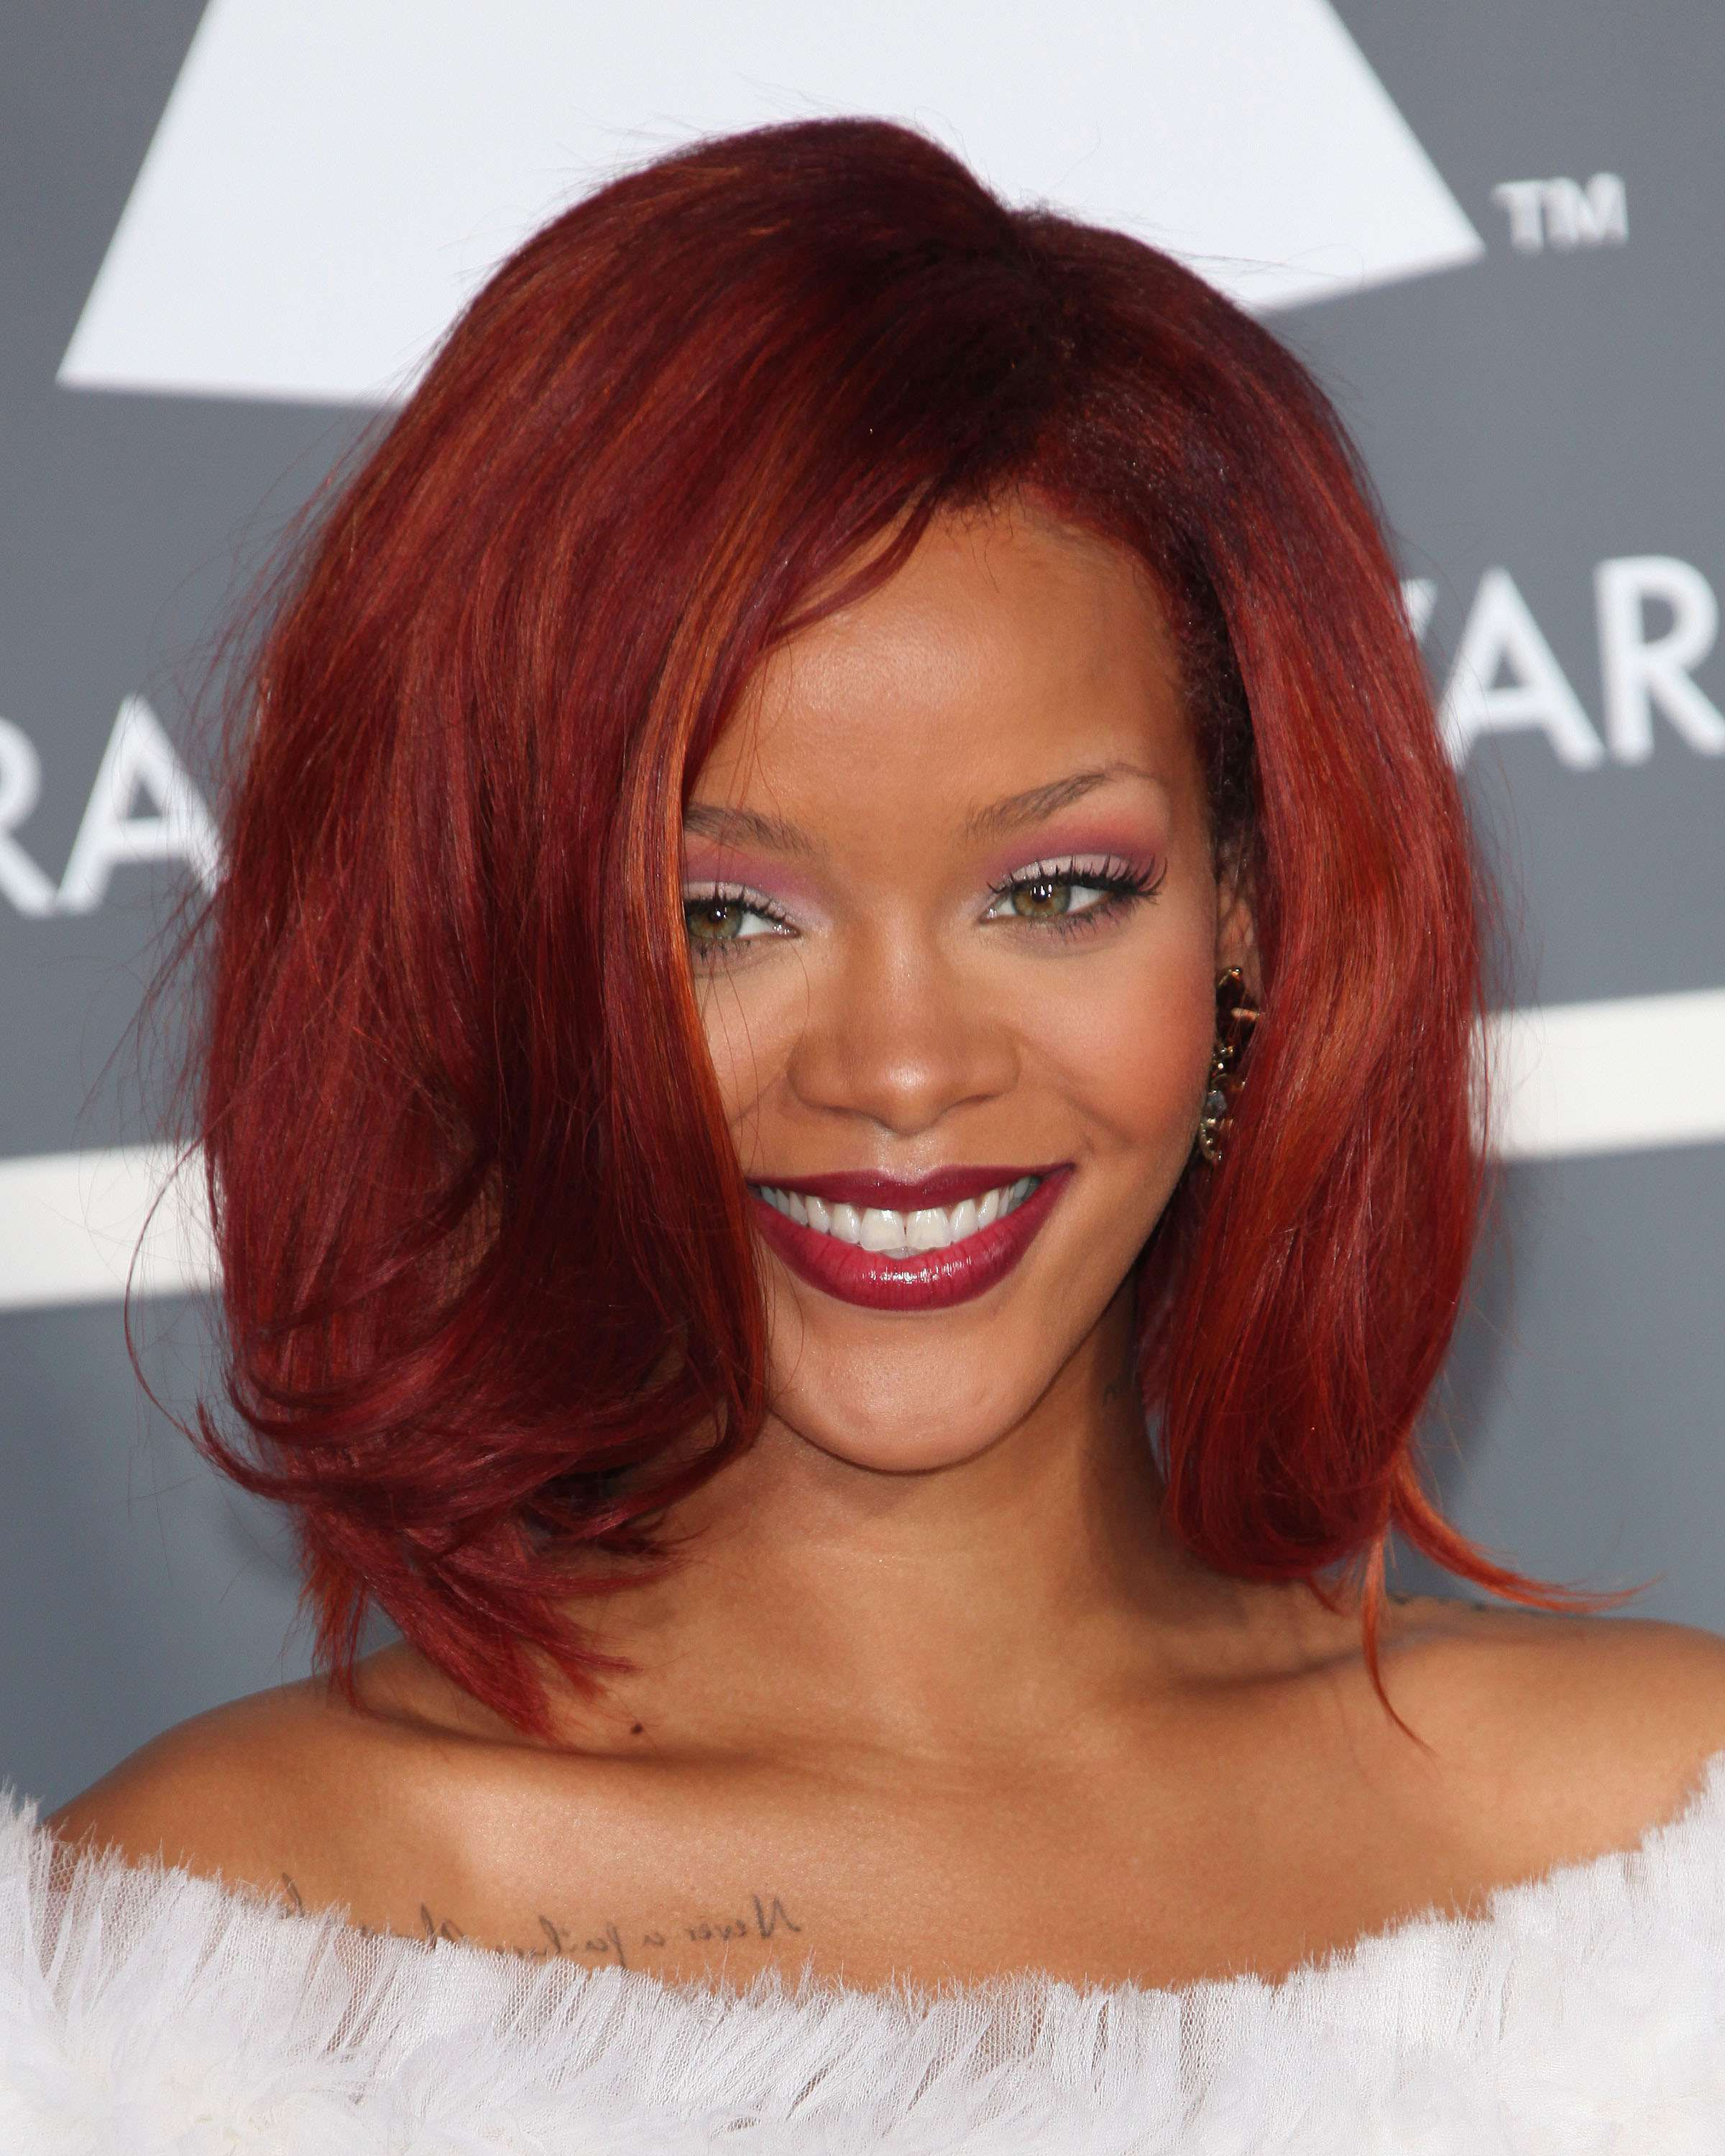 Red Hair Colour Ideas - 28 Celebrity Redheads To Inspire Your Next ...